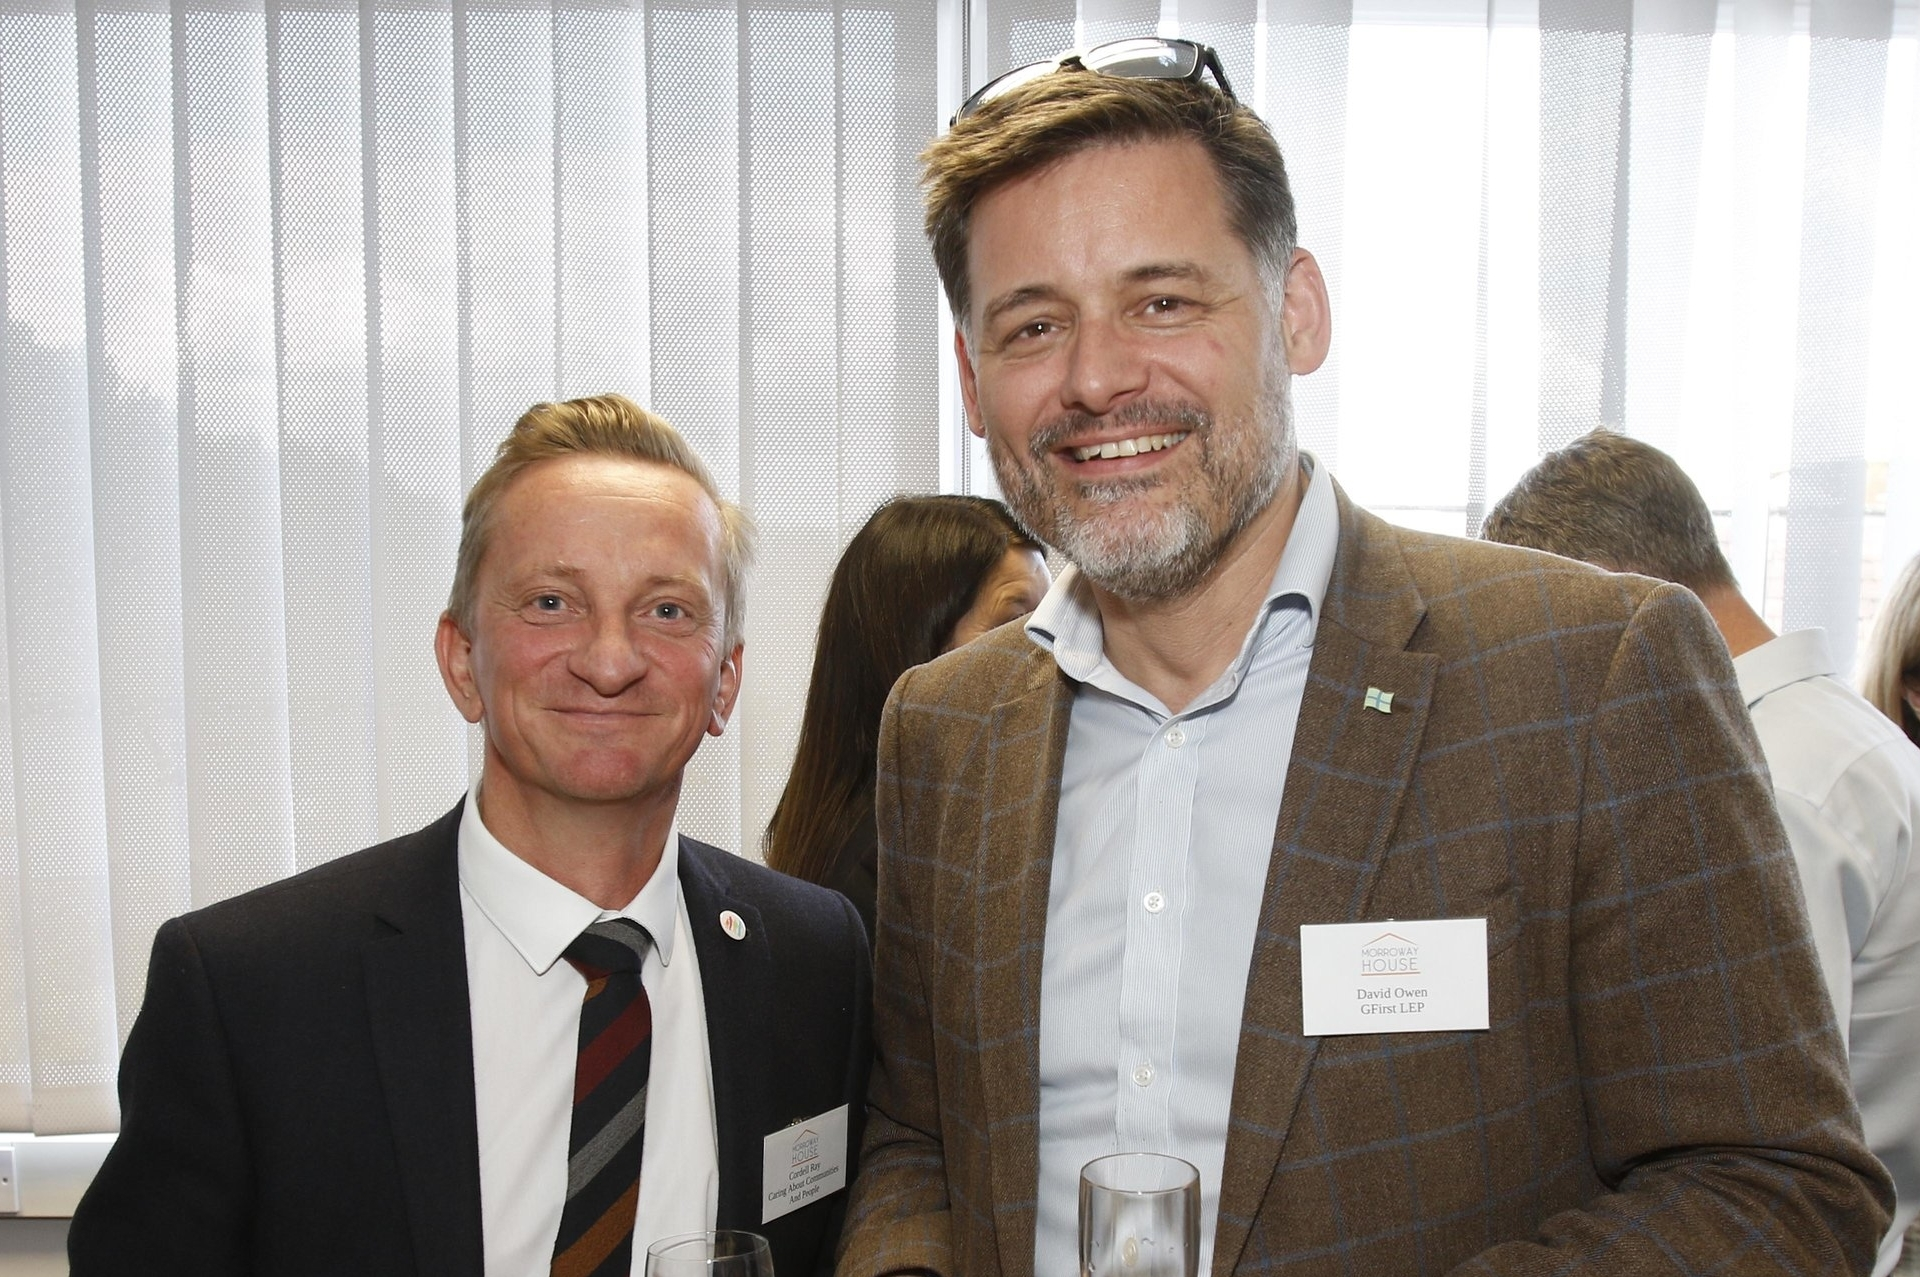 Cordell Ray from CCP charity, and David Owen from GFirst LEP, at the official opening of Morroway House, on Station Road, Gloucester, the community interest company providing office space for charities and good causes. 20 June 2019 Picture by Andrew Higgins/Thousand Word Media   NO SALES, NO SYNDICATION. Contact for more information mob: 07775556610 web: www.thousandwordmedia.com email: antony@thousandwordmedia.com  The photographic copyright (©2019) is exclusively retained by the works creator at all times and sales, syndication or offering the work for future publication to a third party without the photographer's knowledge or agreement is in breach of the Copyright Designs and Patents Act 1988, (Part 1, Section 4, 2b). Please contact the photographer should you have any questions with regard to the use of the attached work and any rights involved.